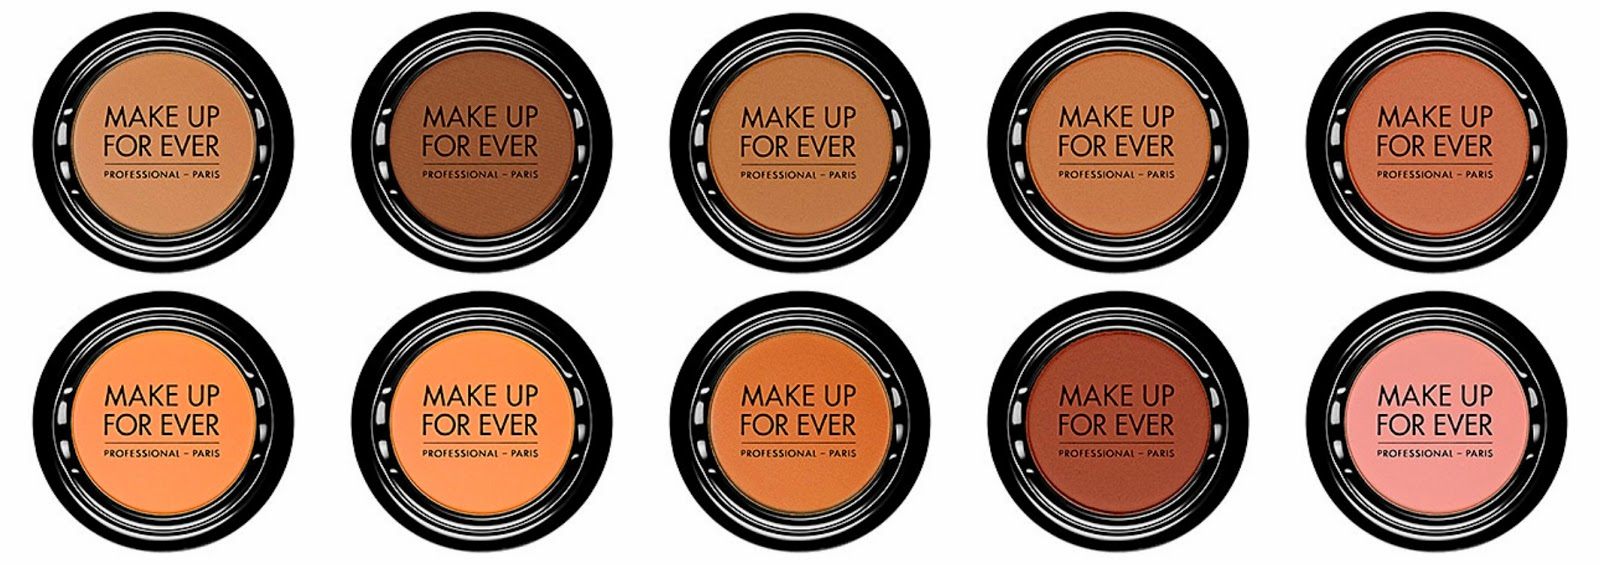 Make Up For Ever Artist Shadow Top from left: M704 Canyon; M720 Apricot; M726 Sienna; M738 Auburn; M806 Antique Pink  Bottom from left: M664 Fawn; M660 Speculous; M656 Chestnut; M650 Cookie; M646 Latte